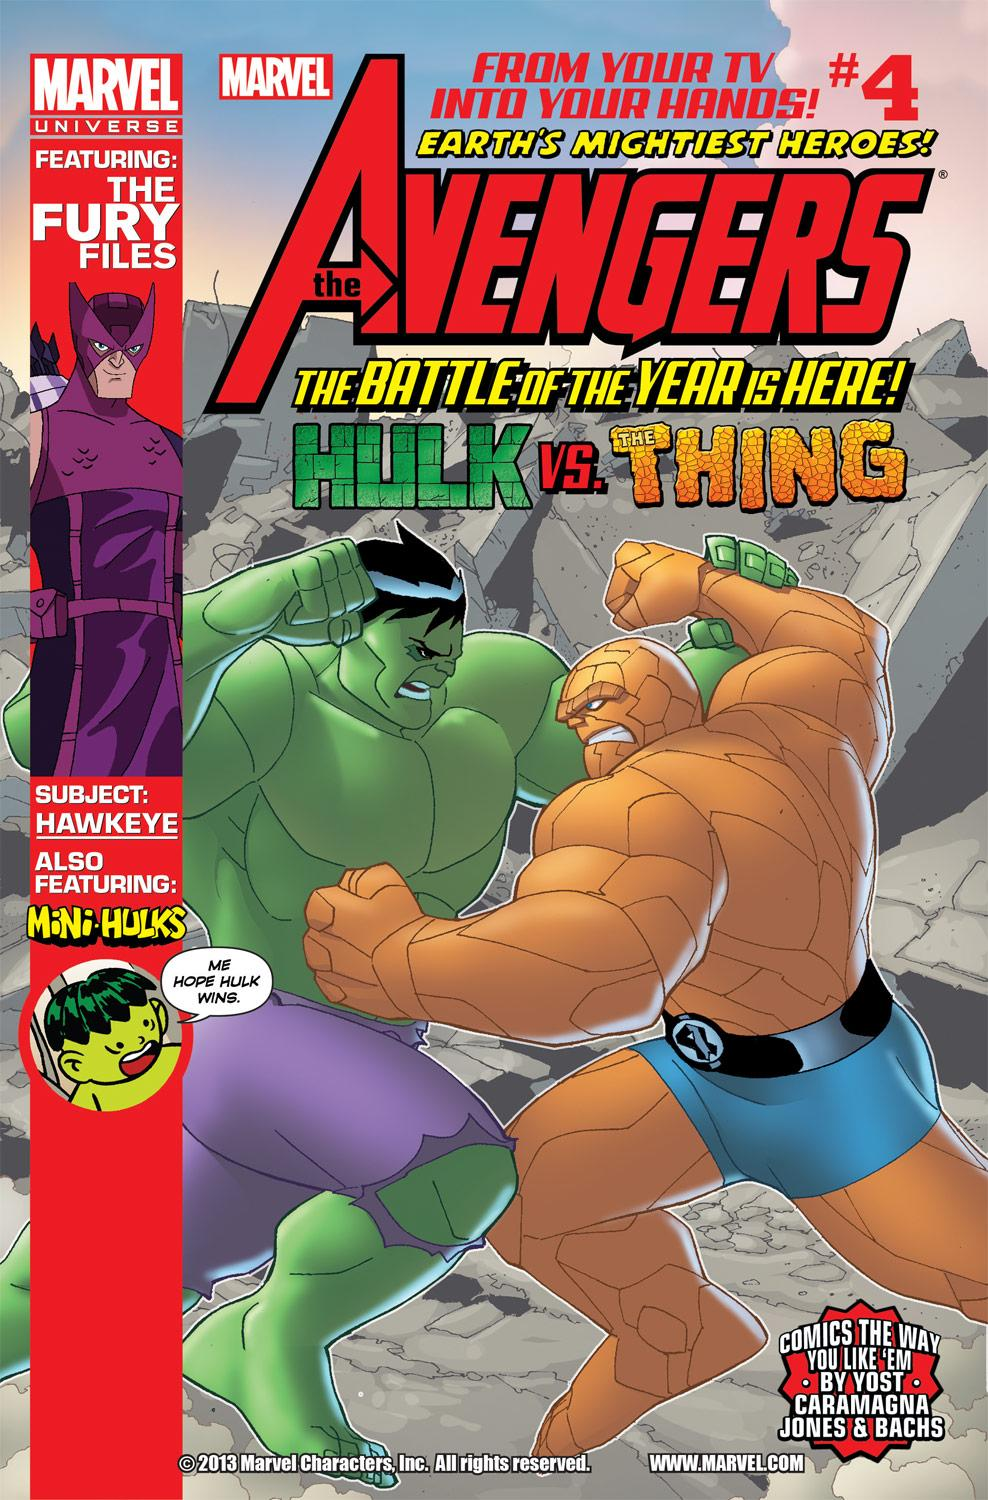 Marvel Universe Avengers: Earth's Mightiest Heroes (2012) #4